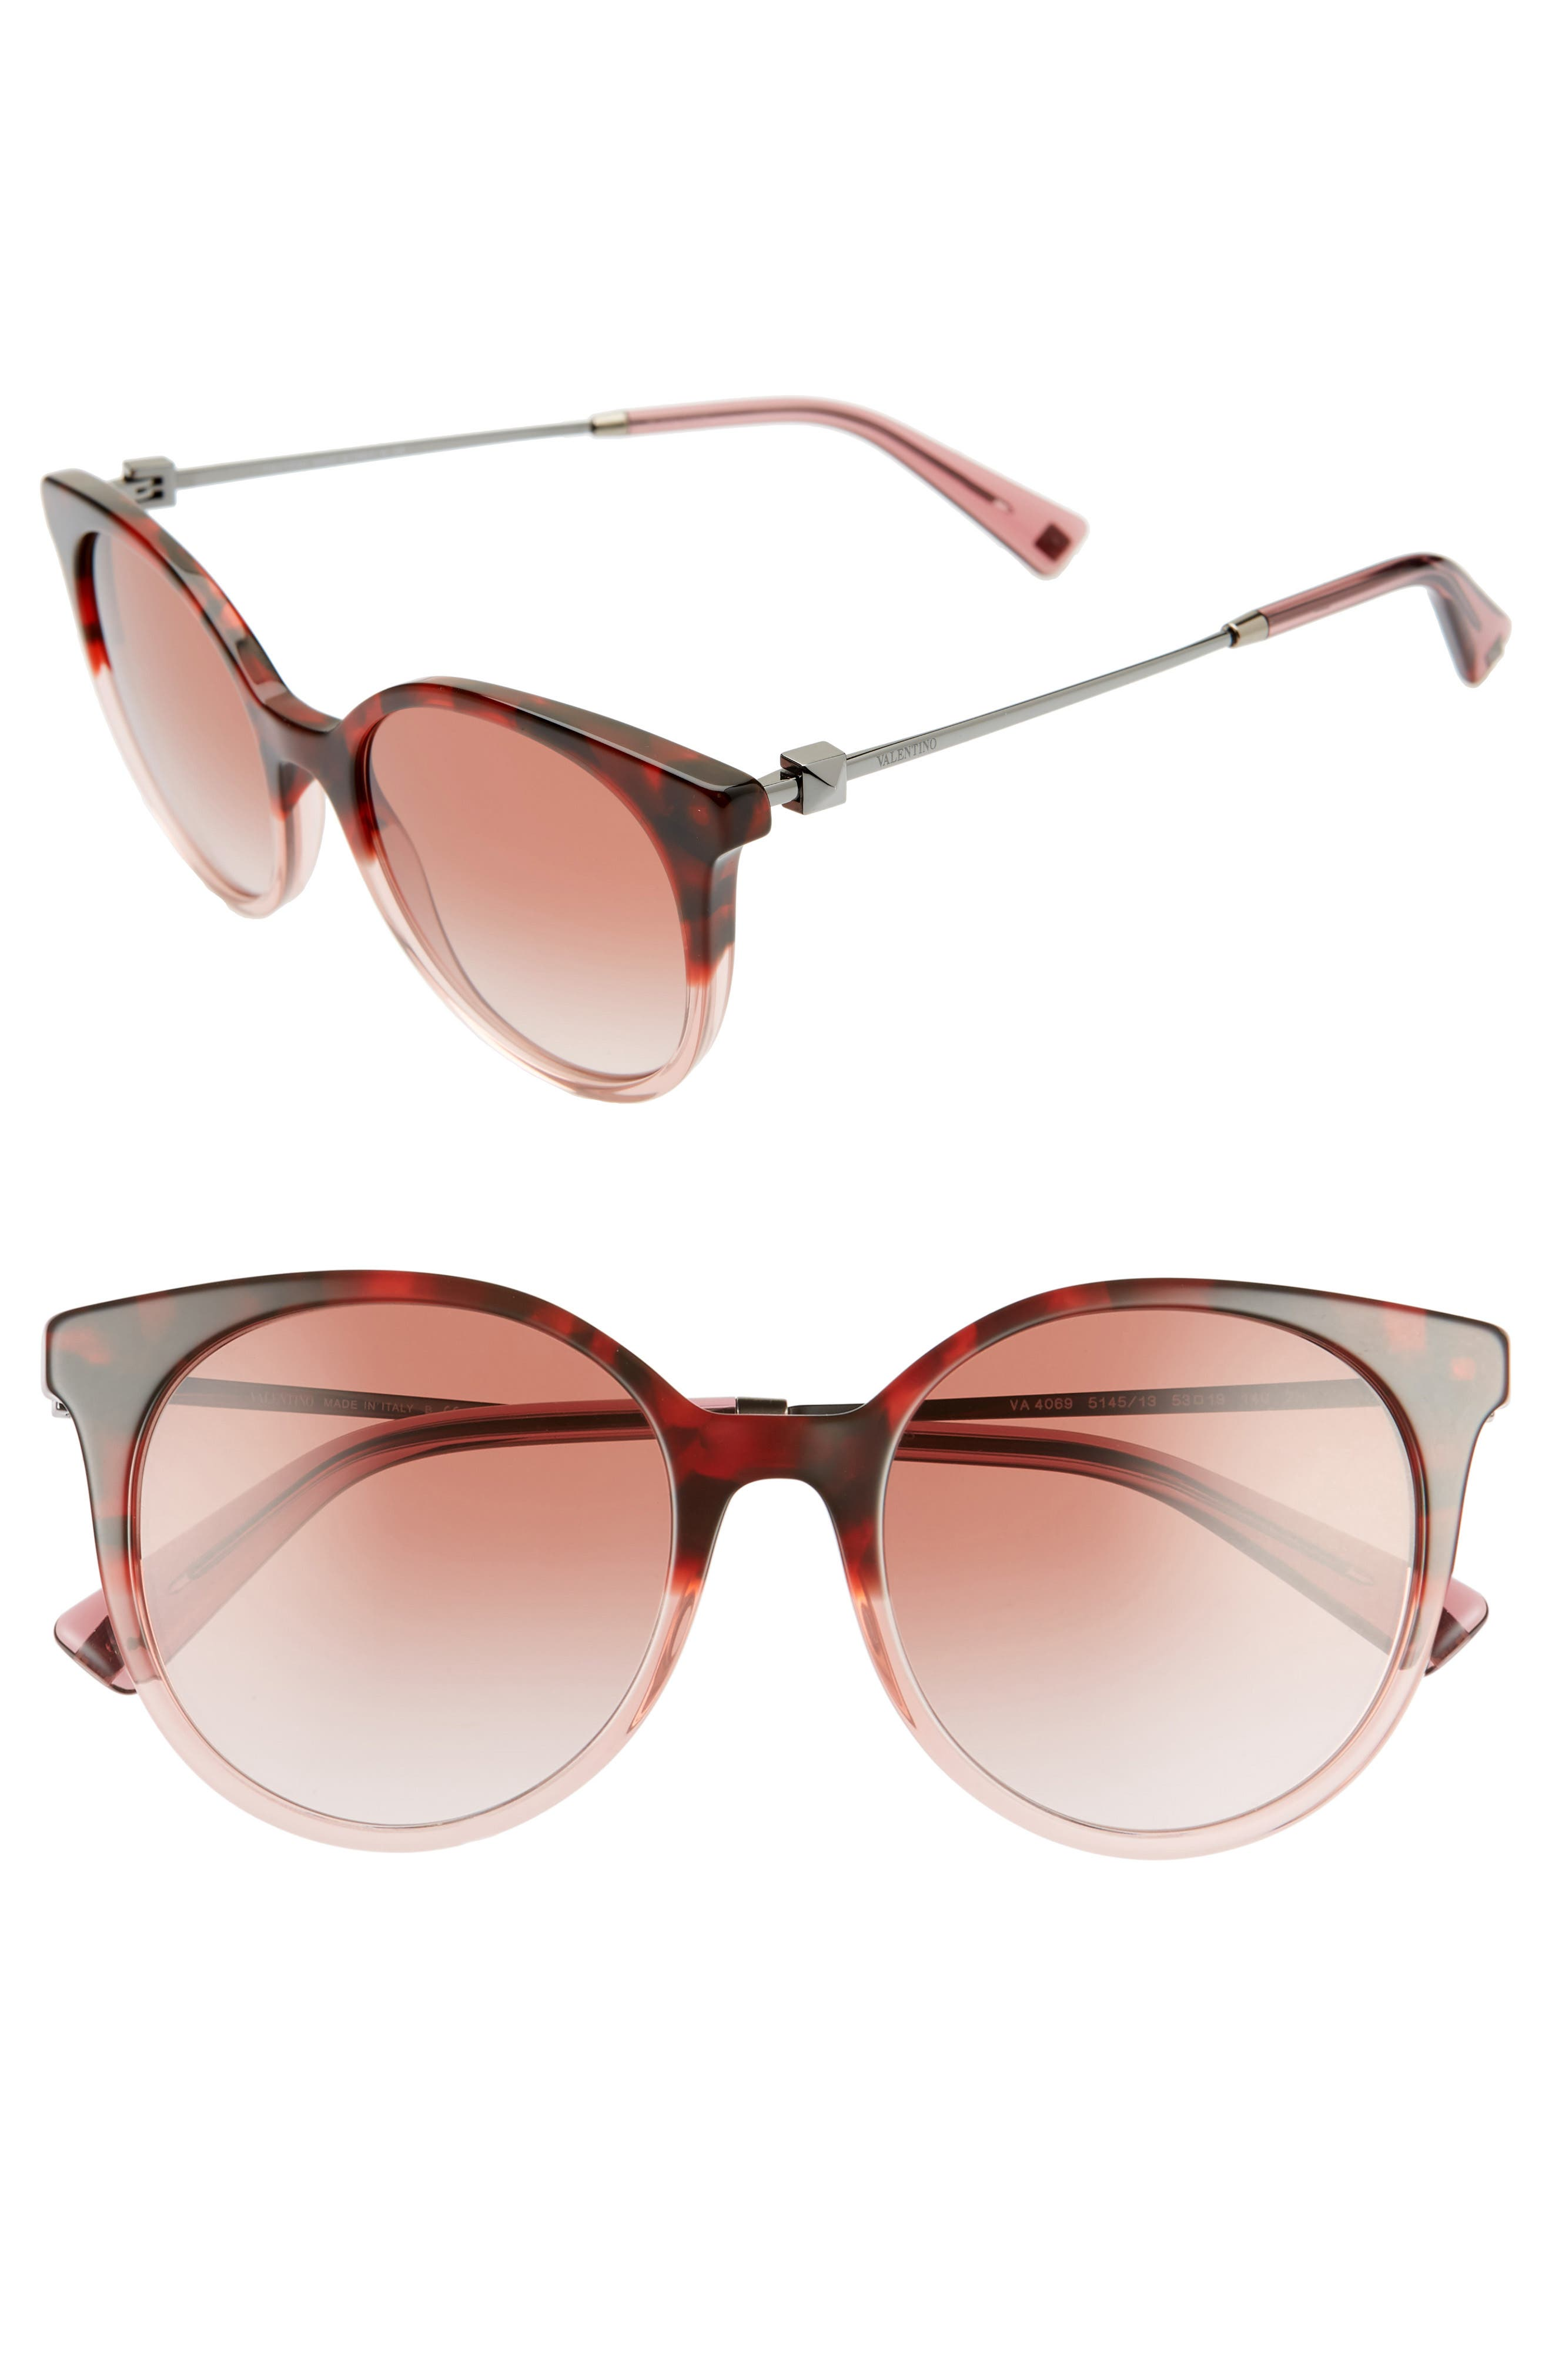 Valentino | Rockstud 53mm Gradient Cat Eye Sunglasses | Nordstrom Rack